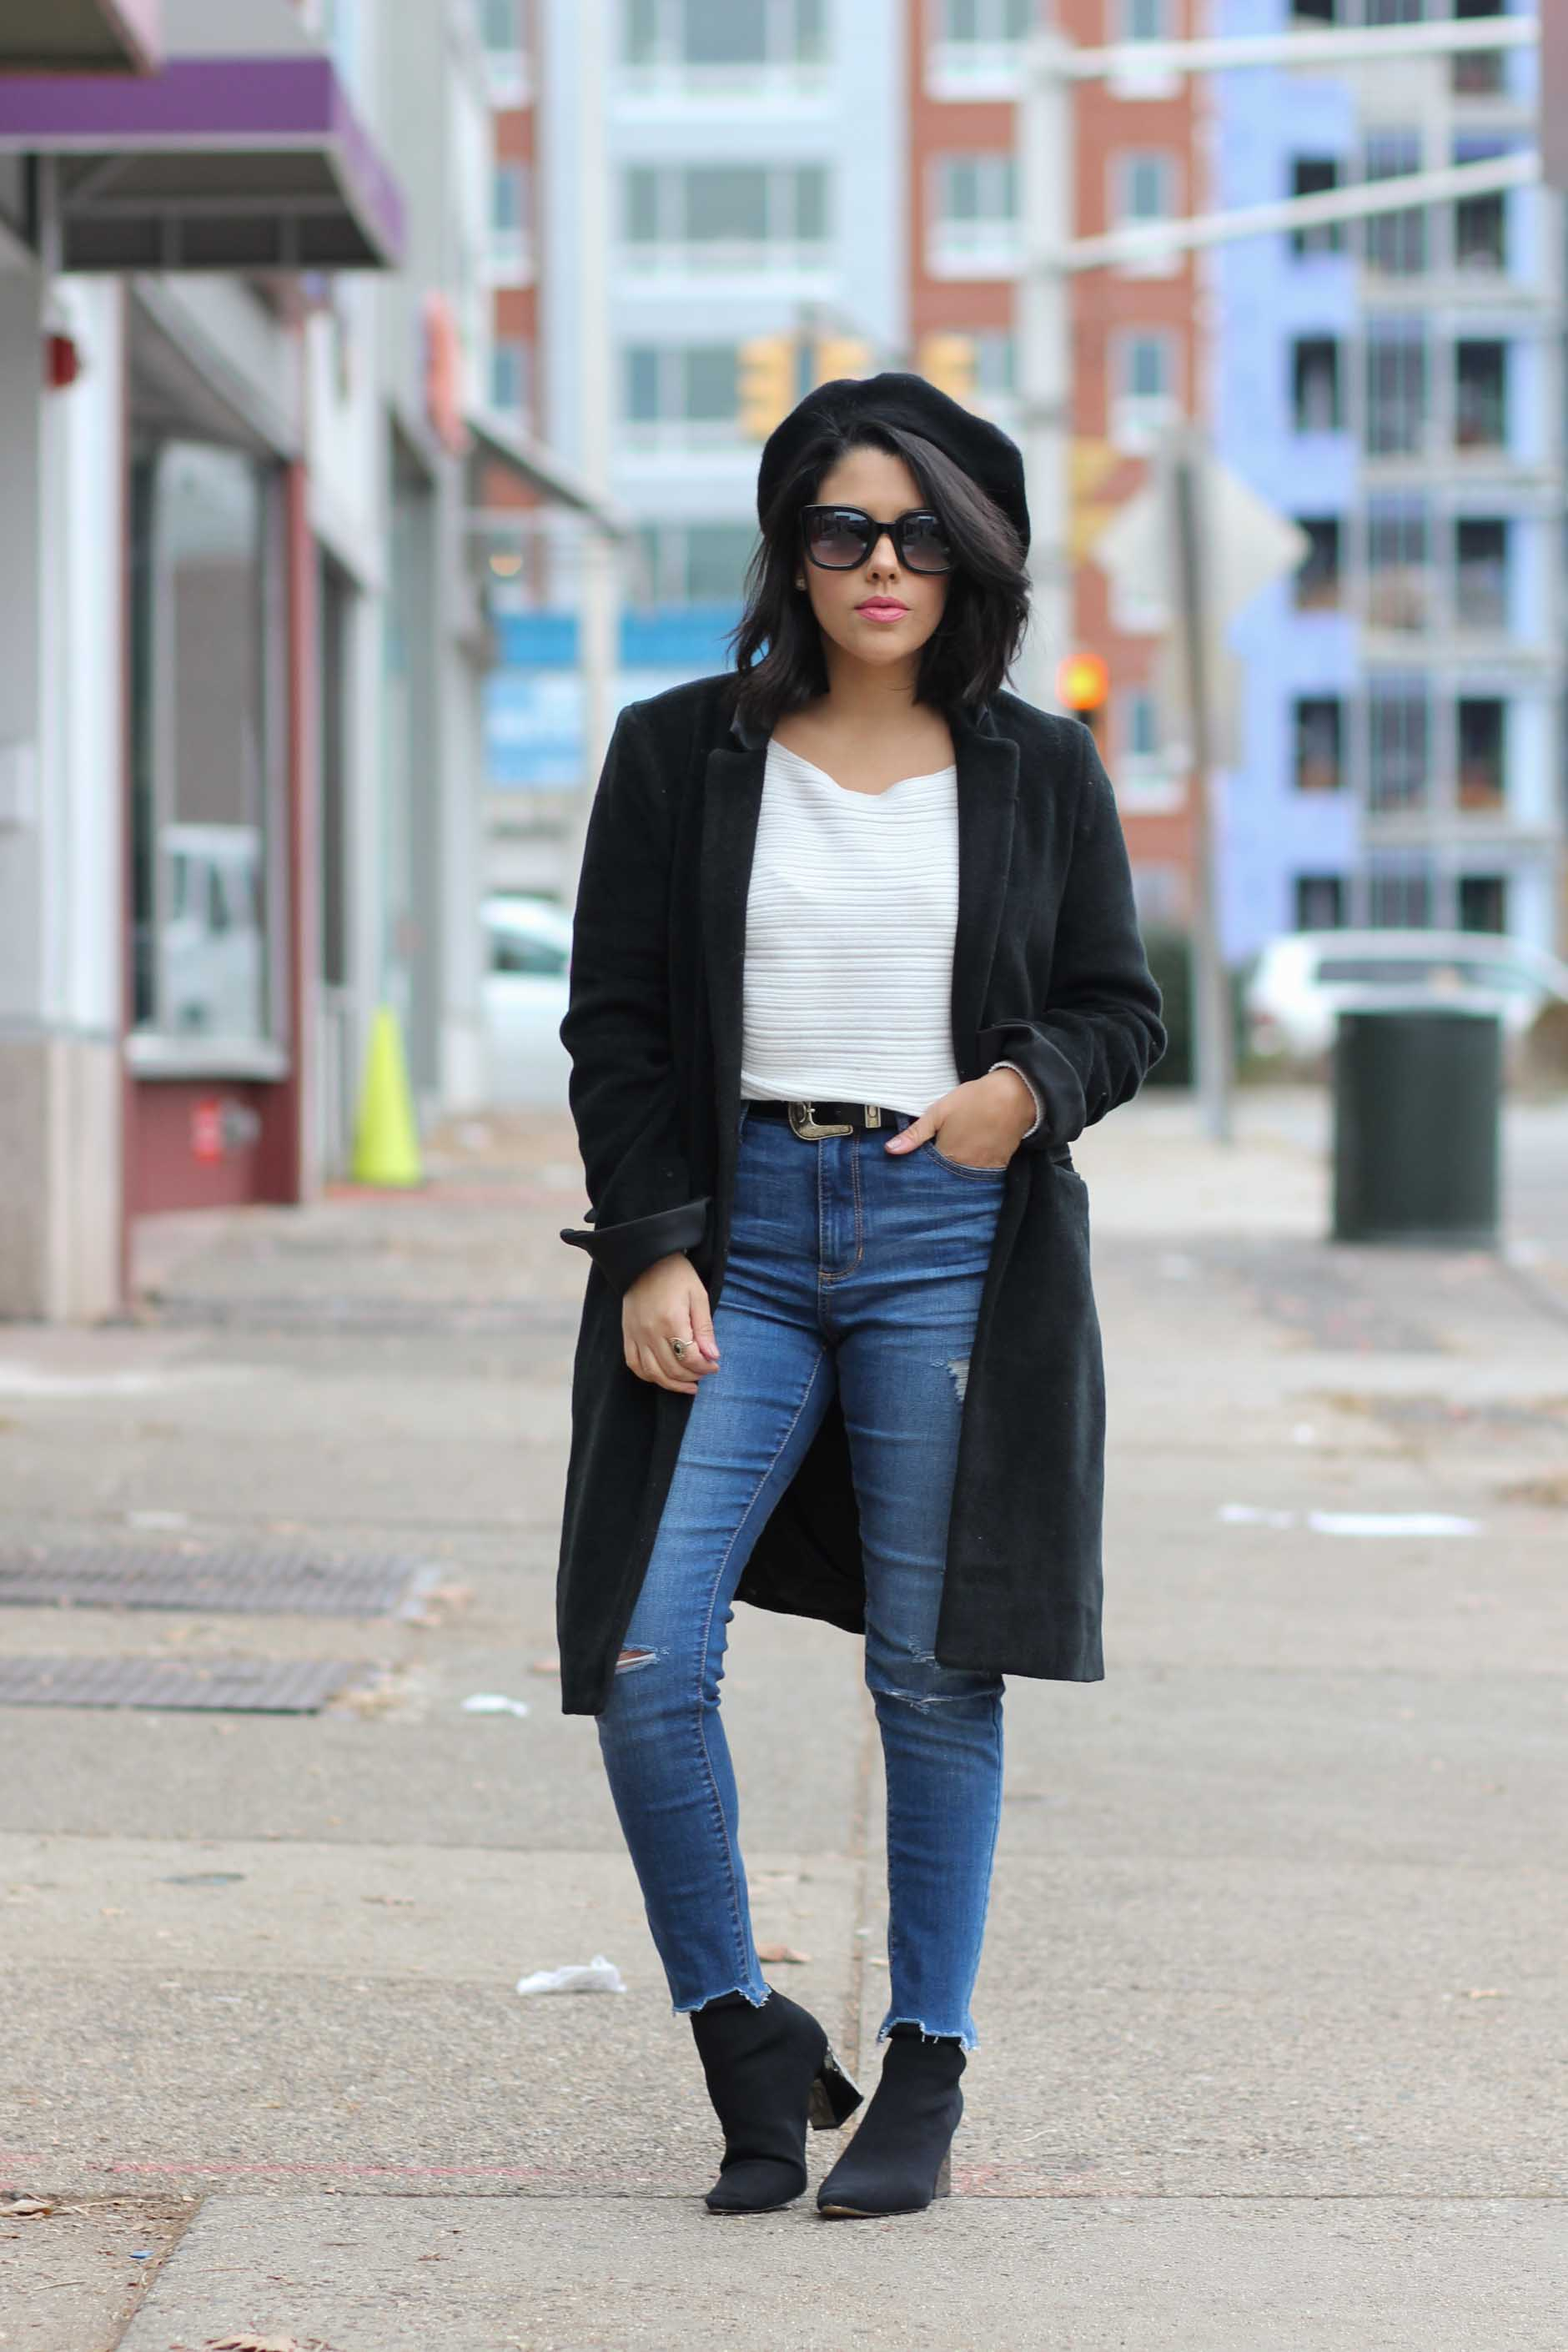 lifestyle blogger naty michele wearing a beret with denim and a black coat